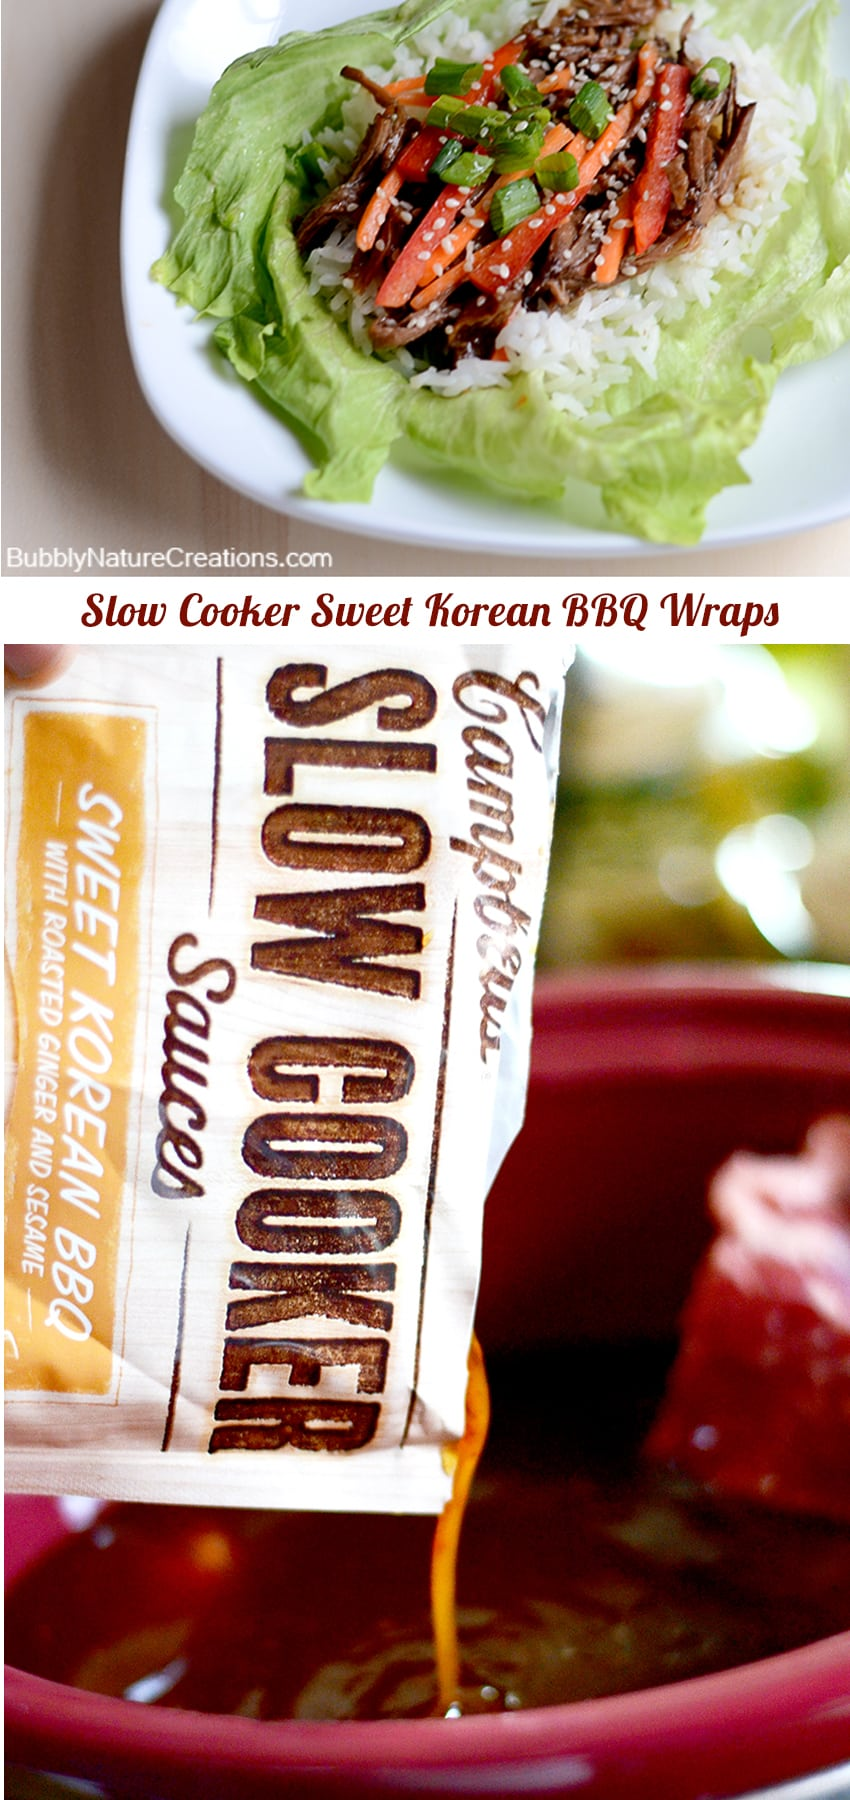 Slow Cooker Sweet Korean BBQ Wraps #CampbellsSkilledSaucers #ad